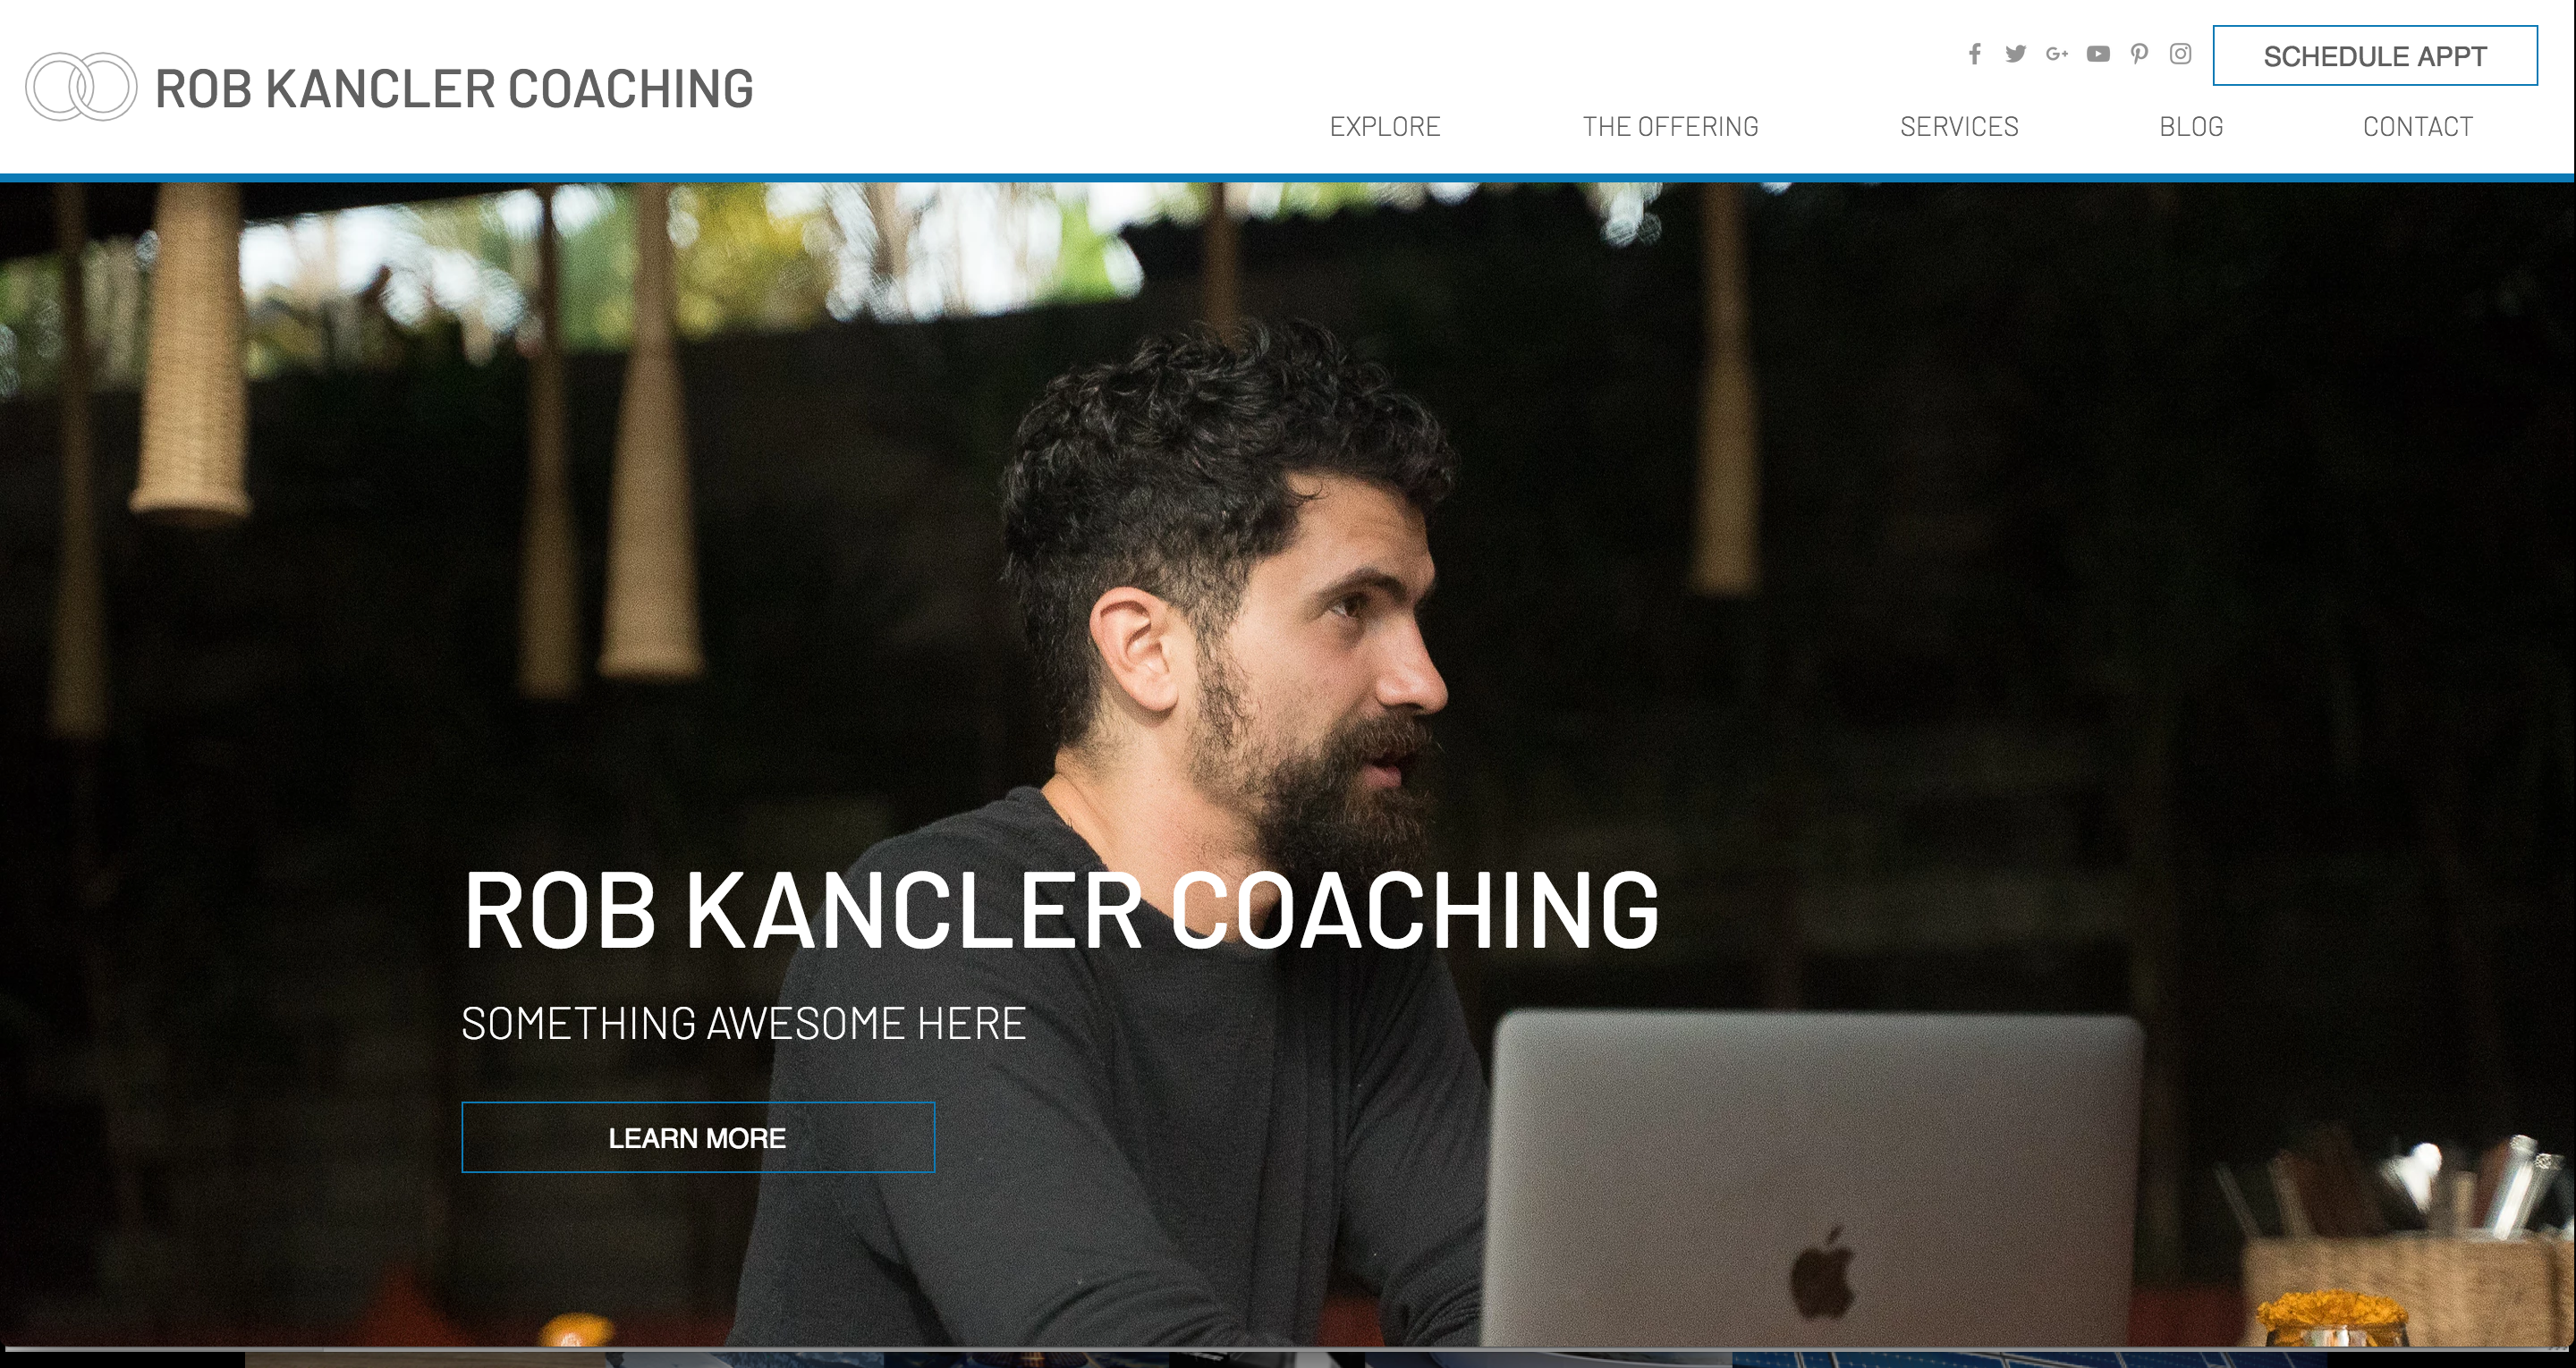 ROB KANCLER CONSULTING